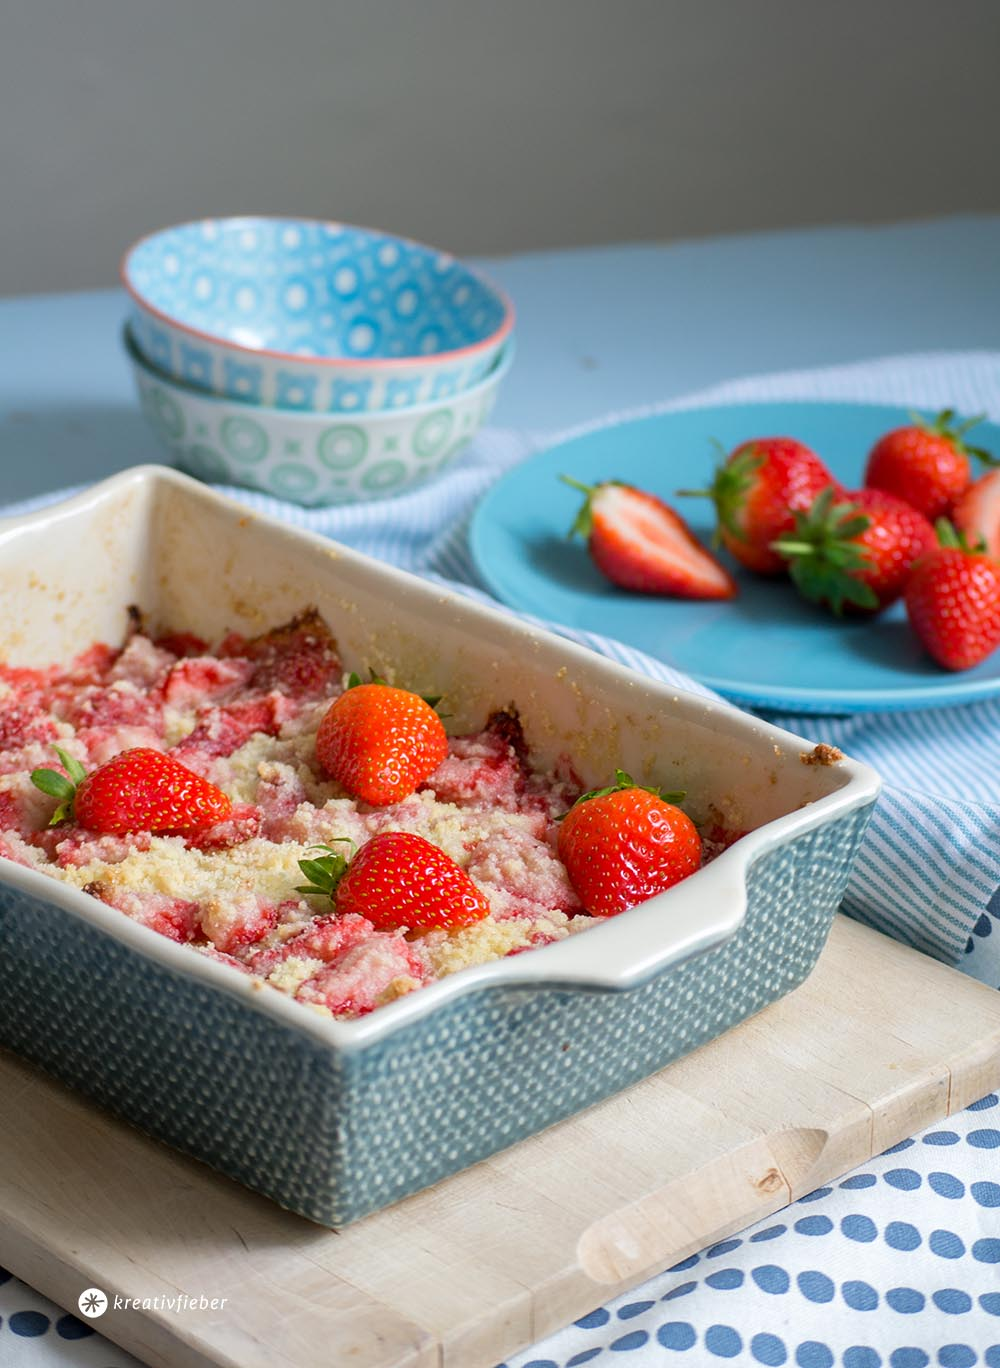 Erbeercrumble strawberry crumble mit Eis